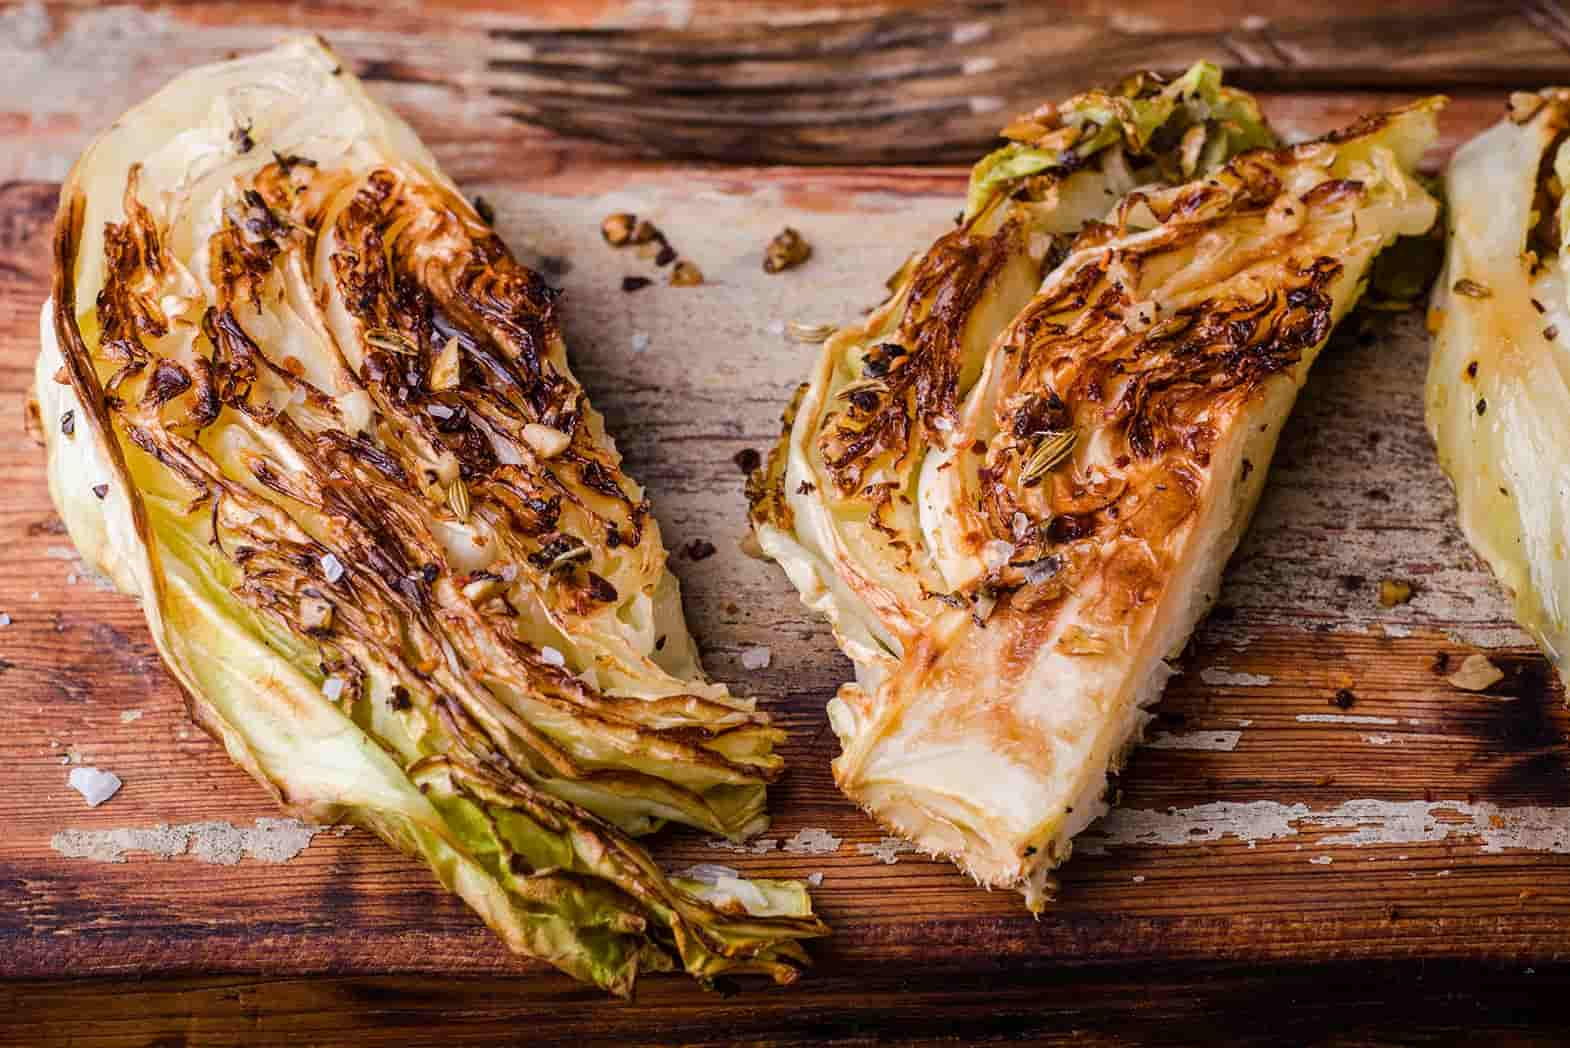 Two charred wedges of cabbage on a wooden background